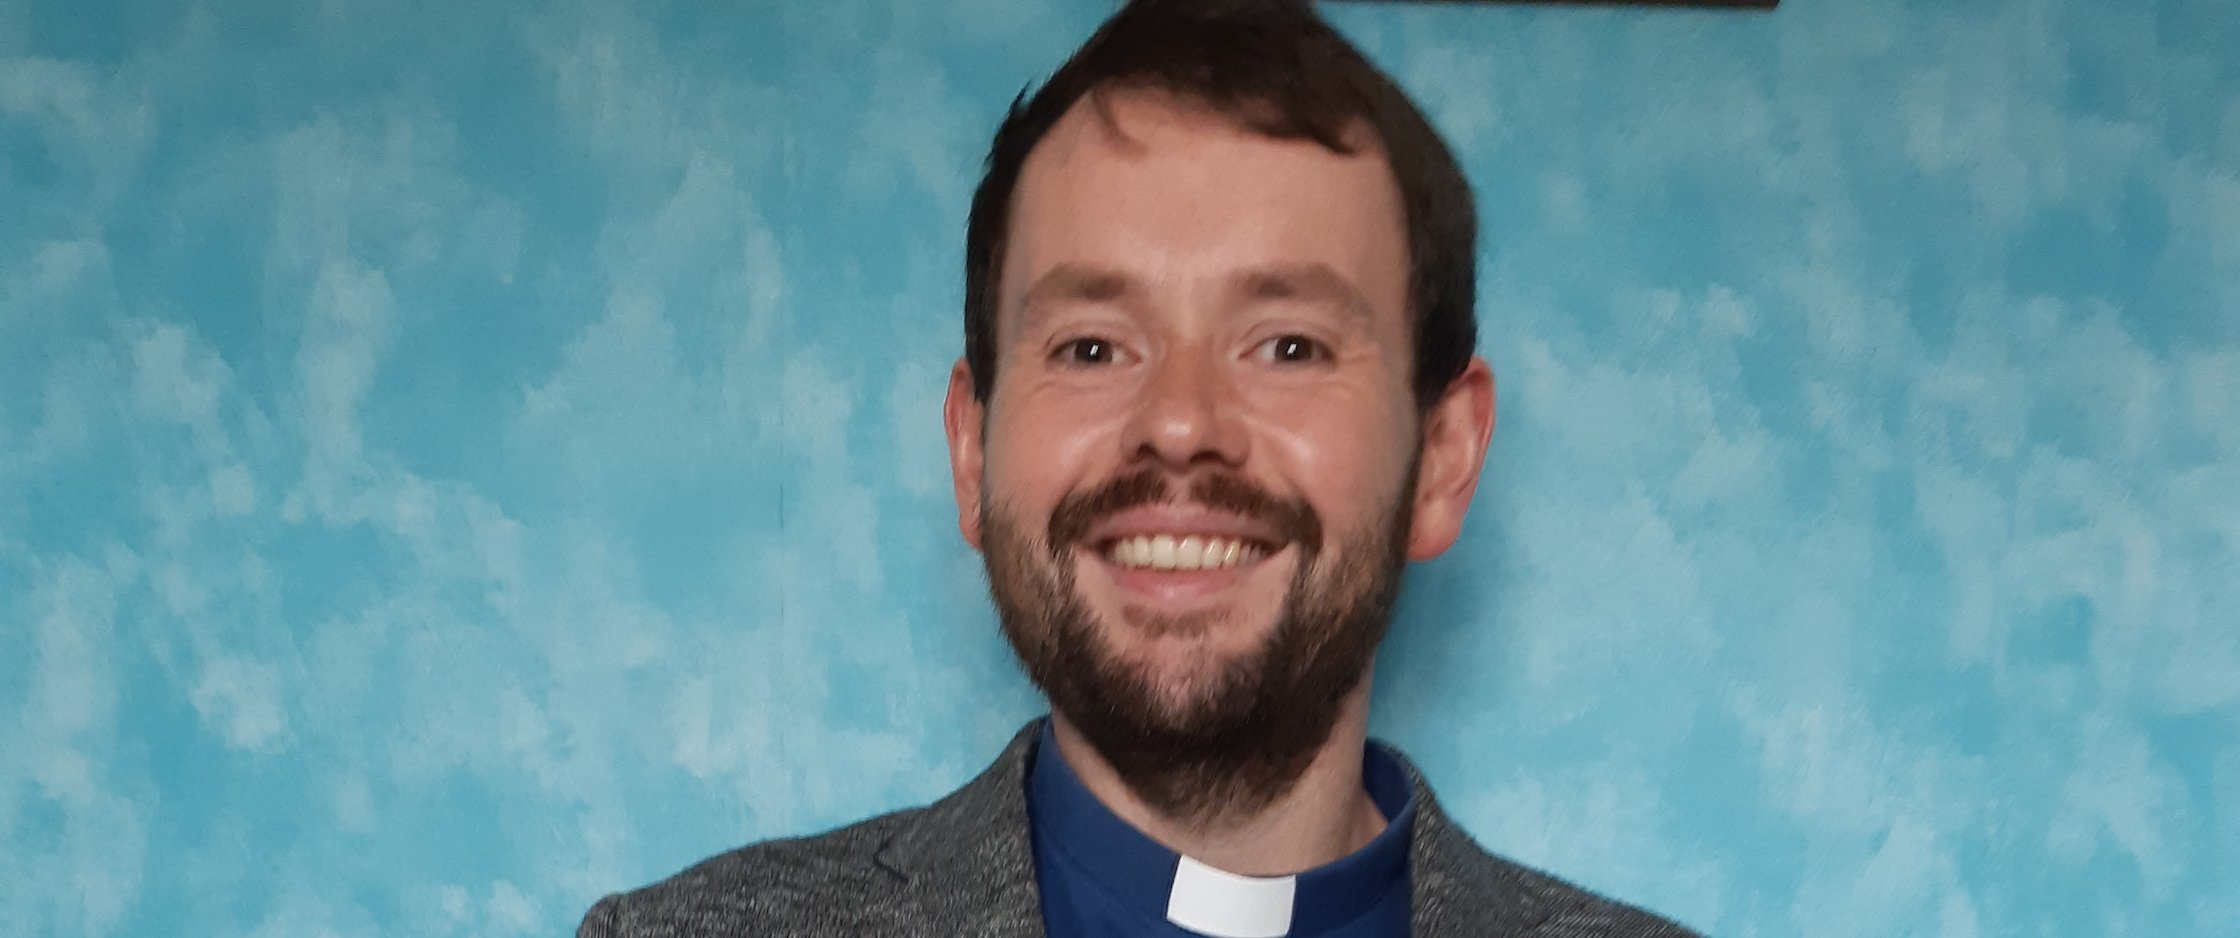 Revd Mark Gallagher shares his twin passions of science and faith